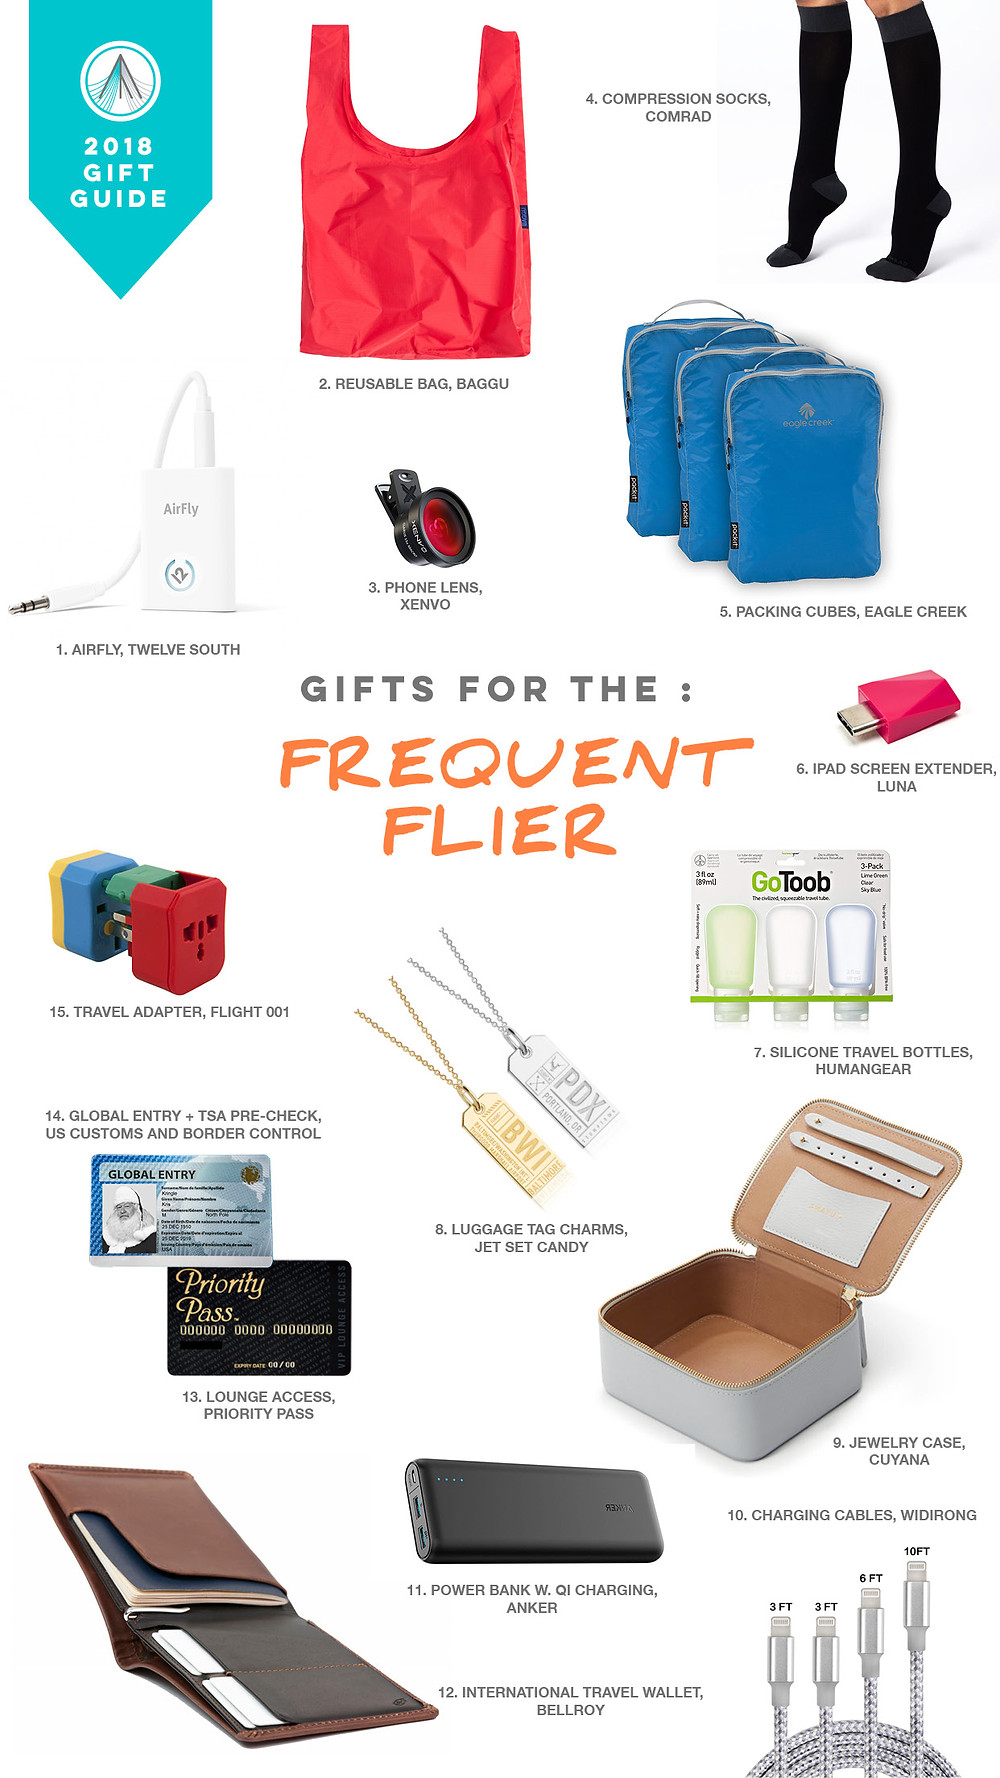 Gifts for the frequent flier. 15 items under $115.